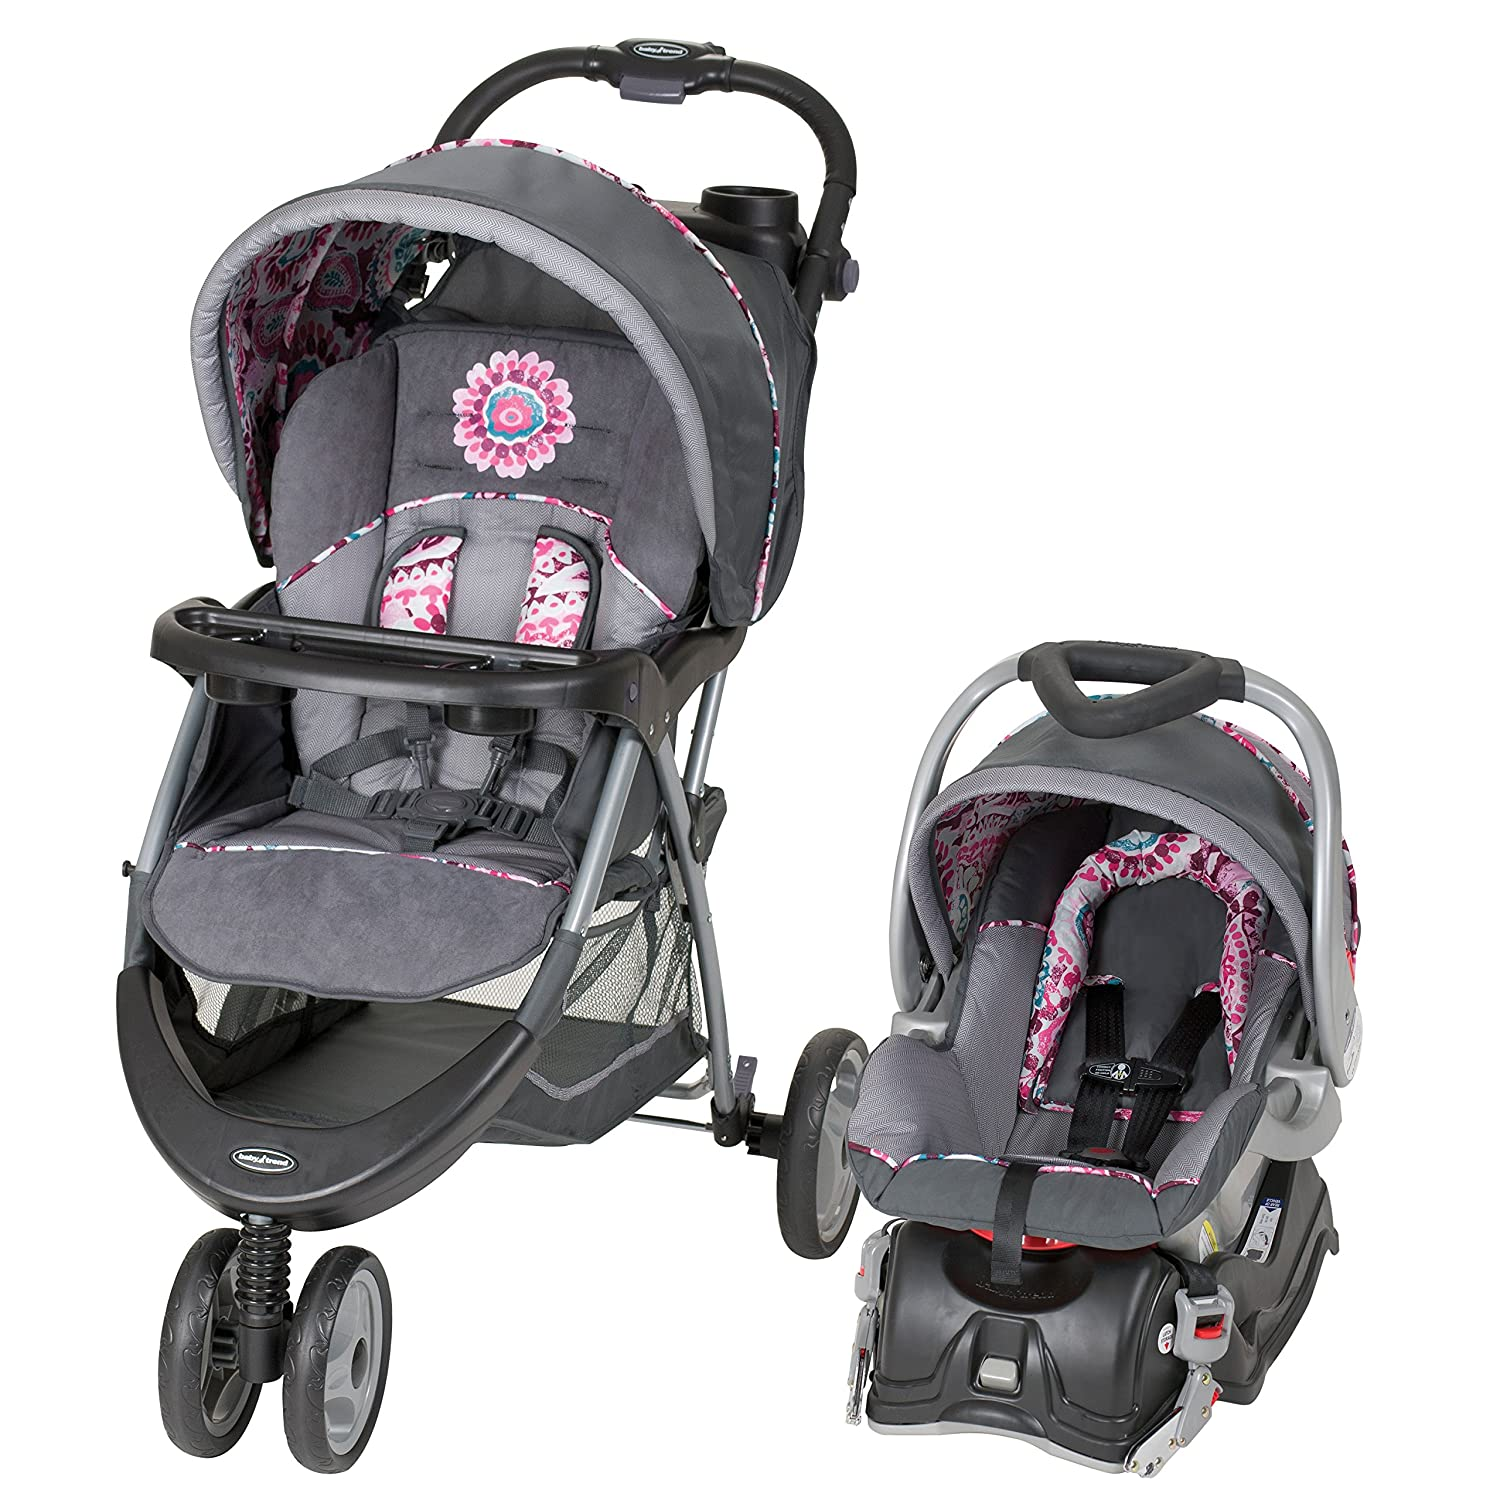 Baby Trend EZ Ride 5 Travel System, Hounds Tooth TS40949